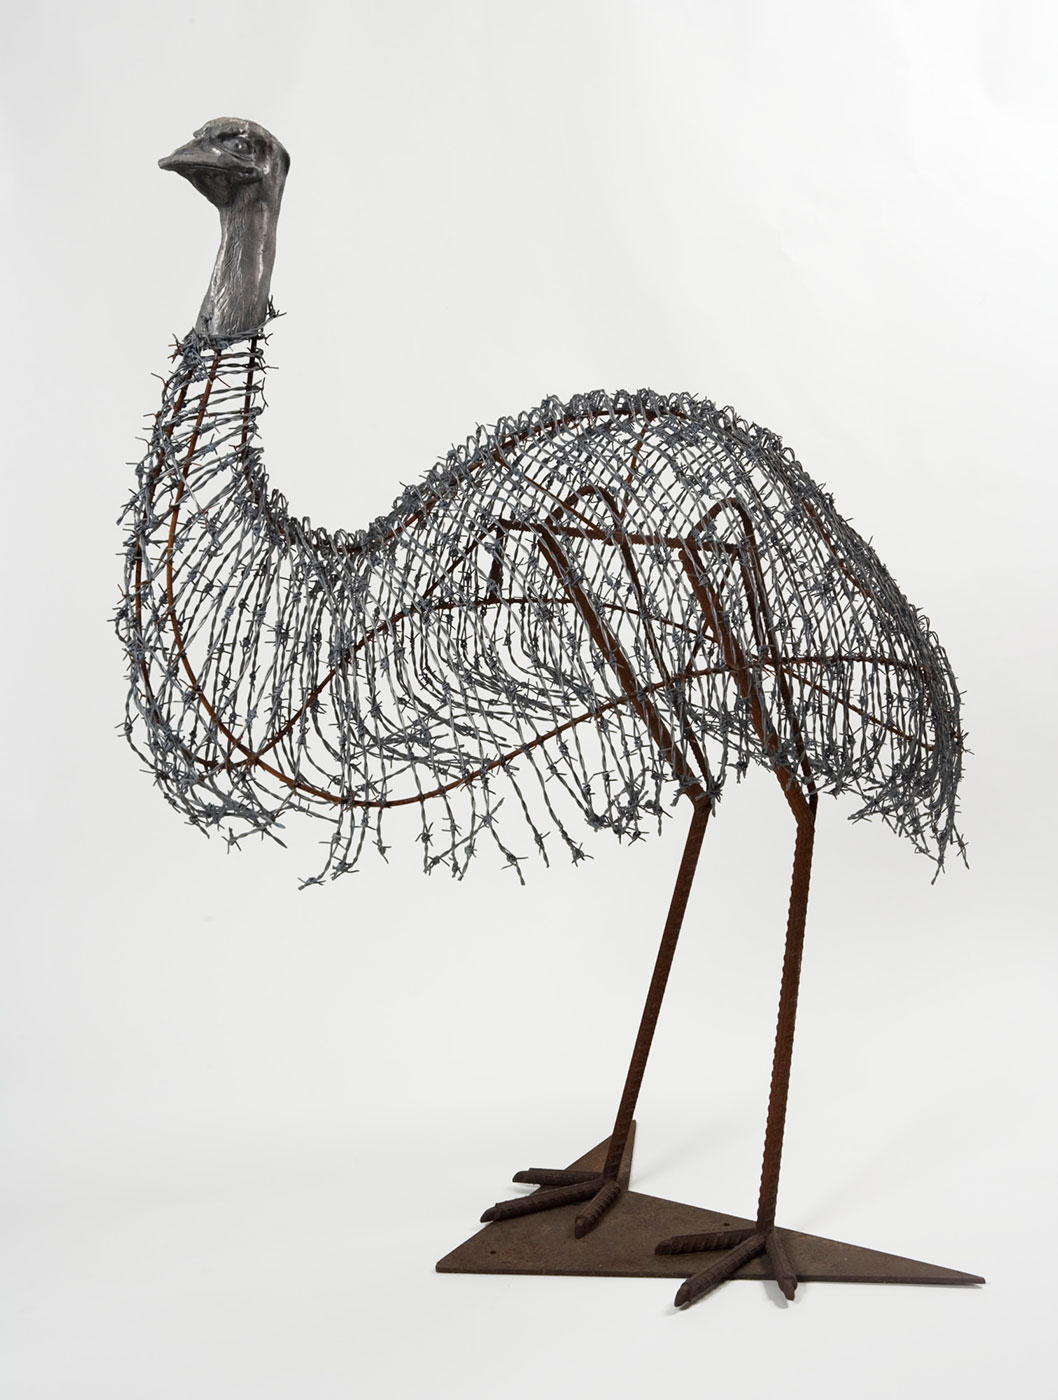 A sculpture in the shape of an emu made with barbed wire, aluminium and steel. - click to view larger image